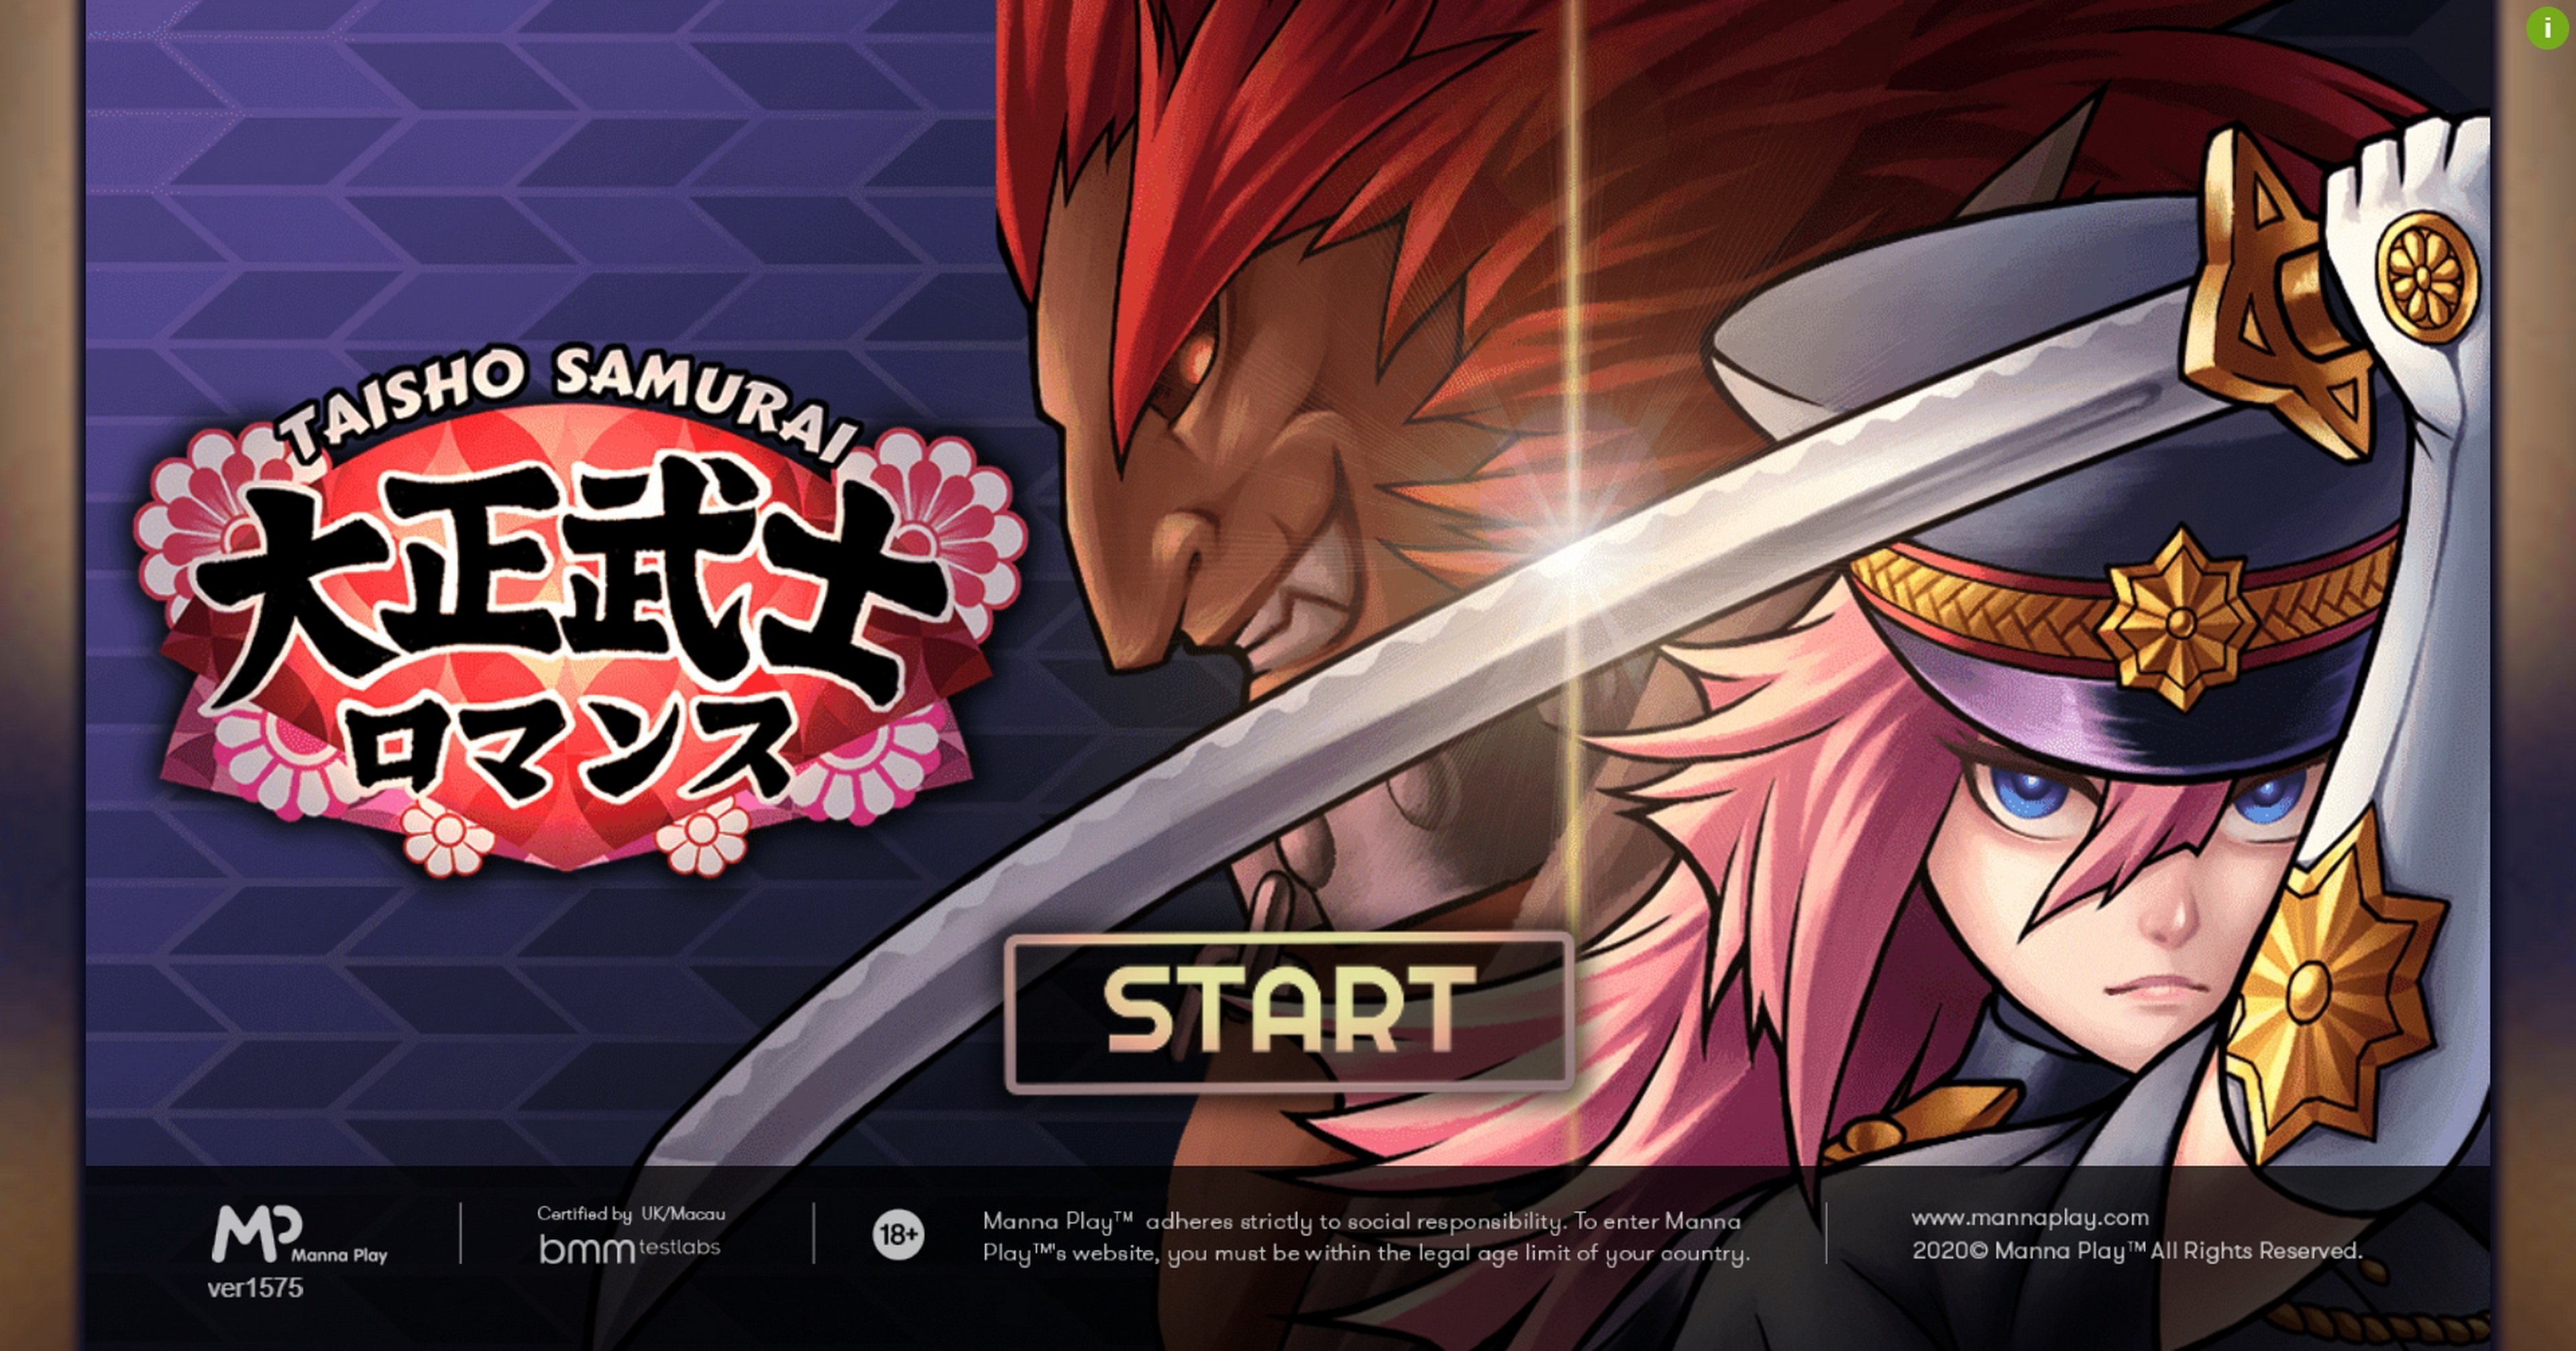 Play Taisho Samurai Free Casino Slot Game by Manna Play